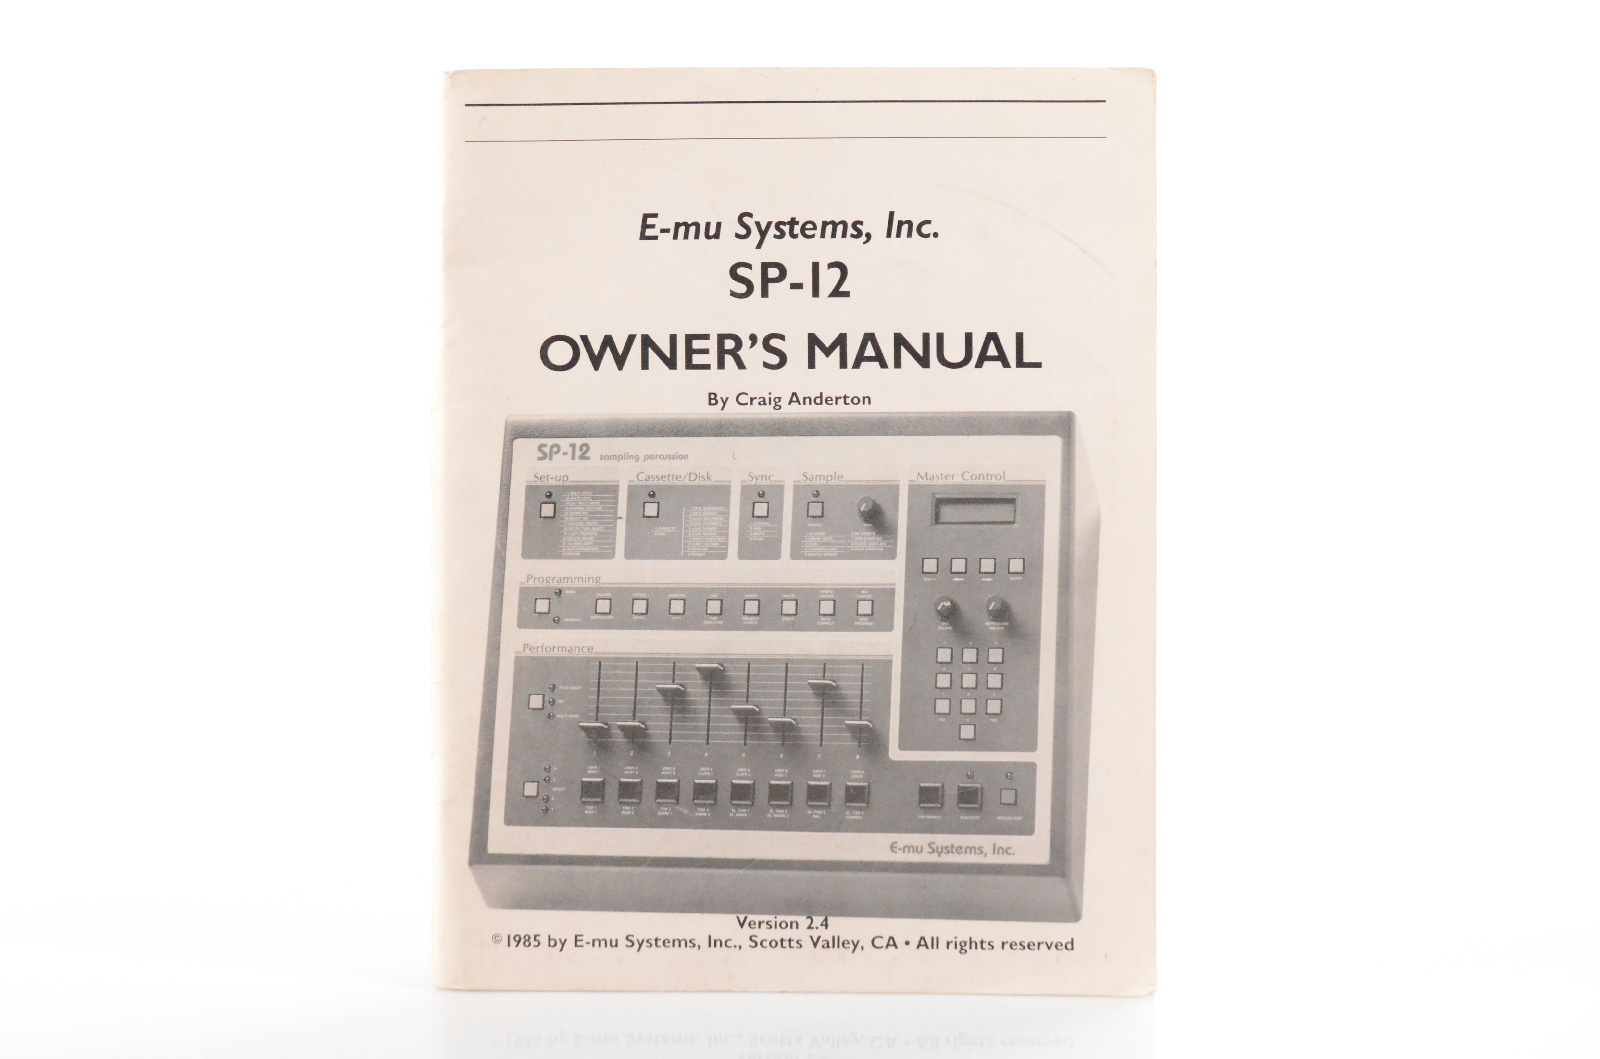 E-mu Systems SP-12 SP12 Sampling Percussion Owner's Manual Version 2.4 #33115